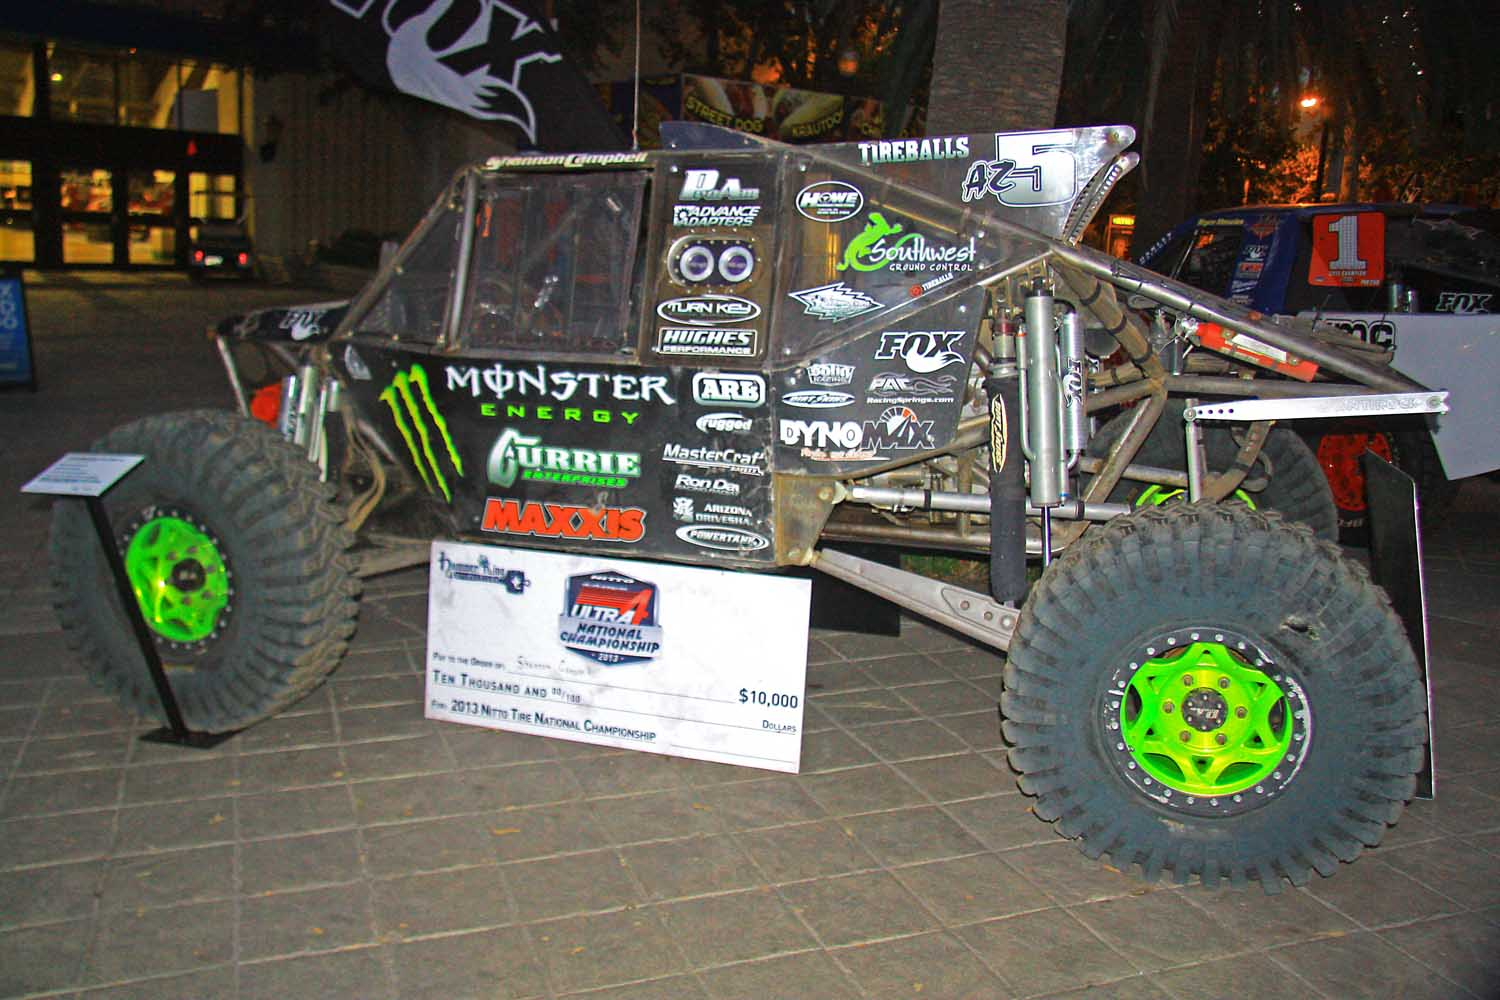 102  Shannon Cambell Monster Energy King Of The Hammers buggy